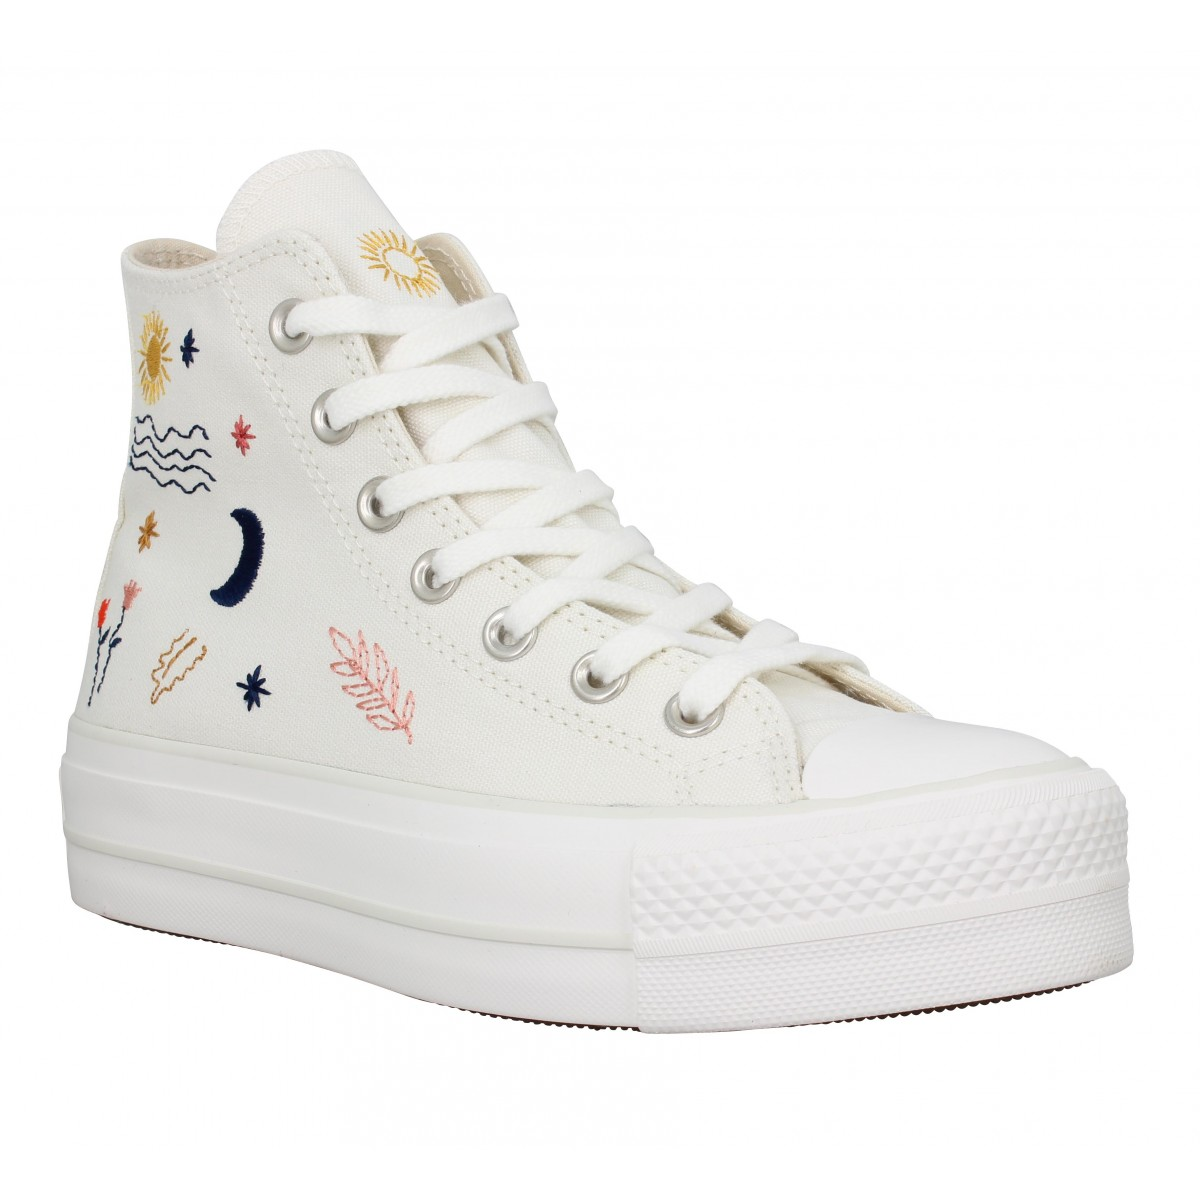 Baskets CONVERSE CT All Star Lift Hi It's Okay To Wander toile Femme Egret